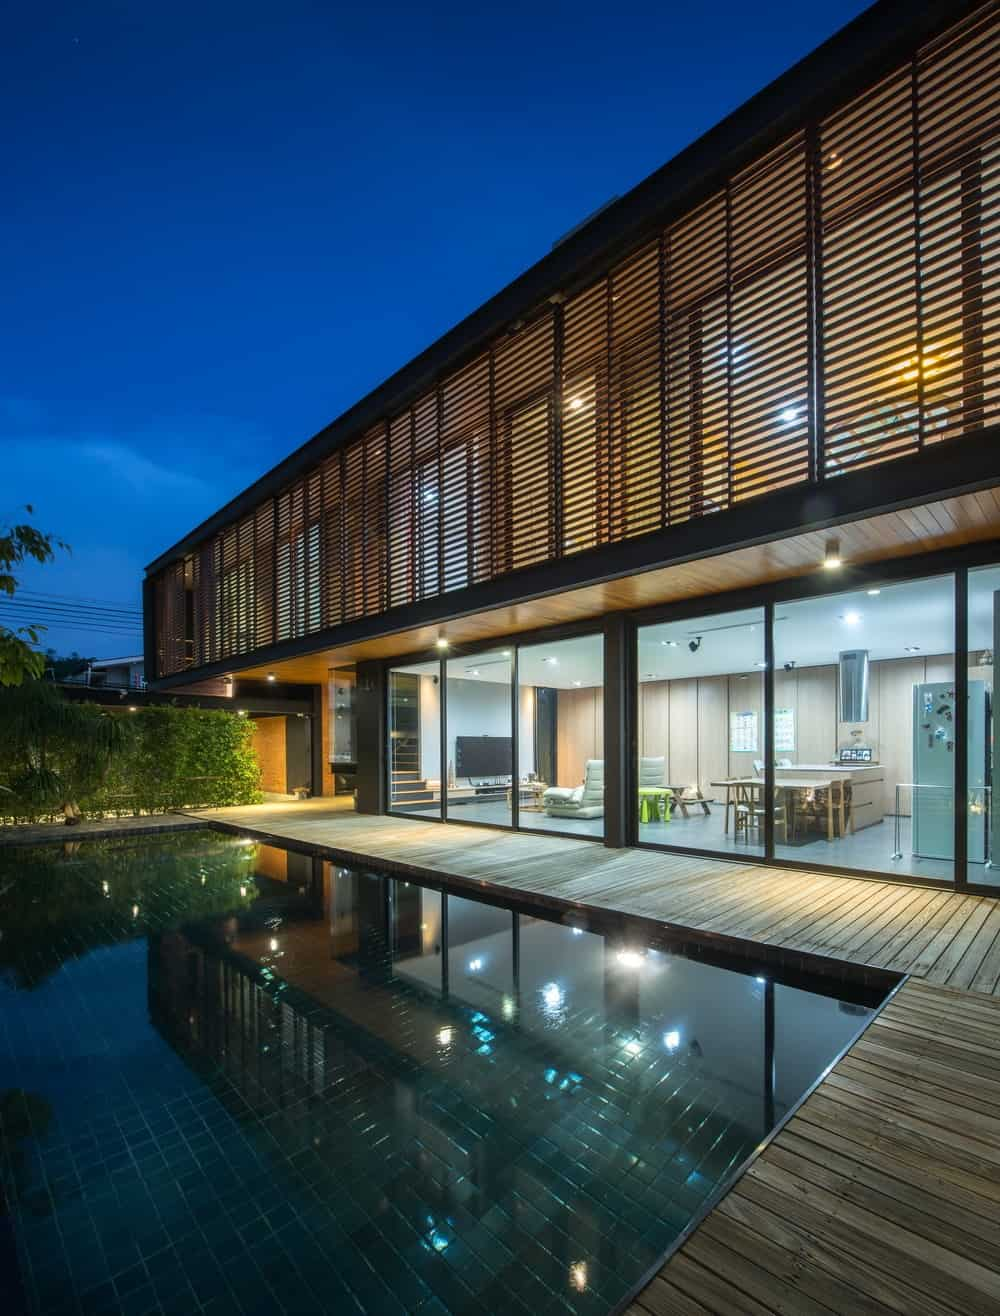 This is a view of the house from the vantage of the swimming pool showcasing the warm lights that escape through the glass walls and the wooden panels of the second floor.